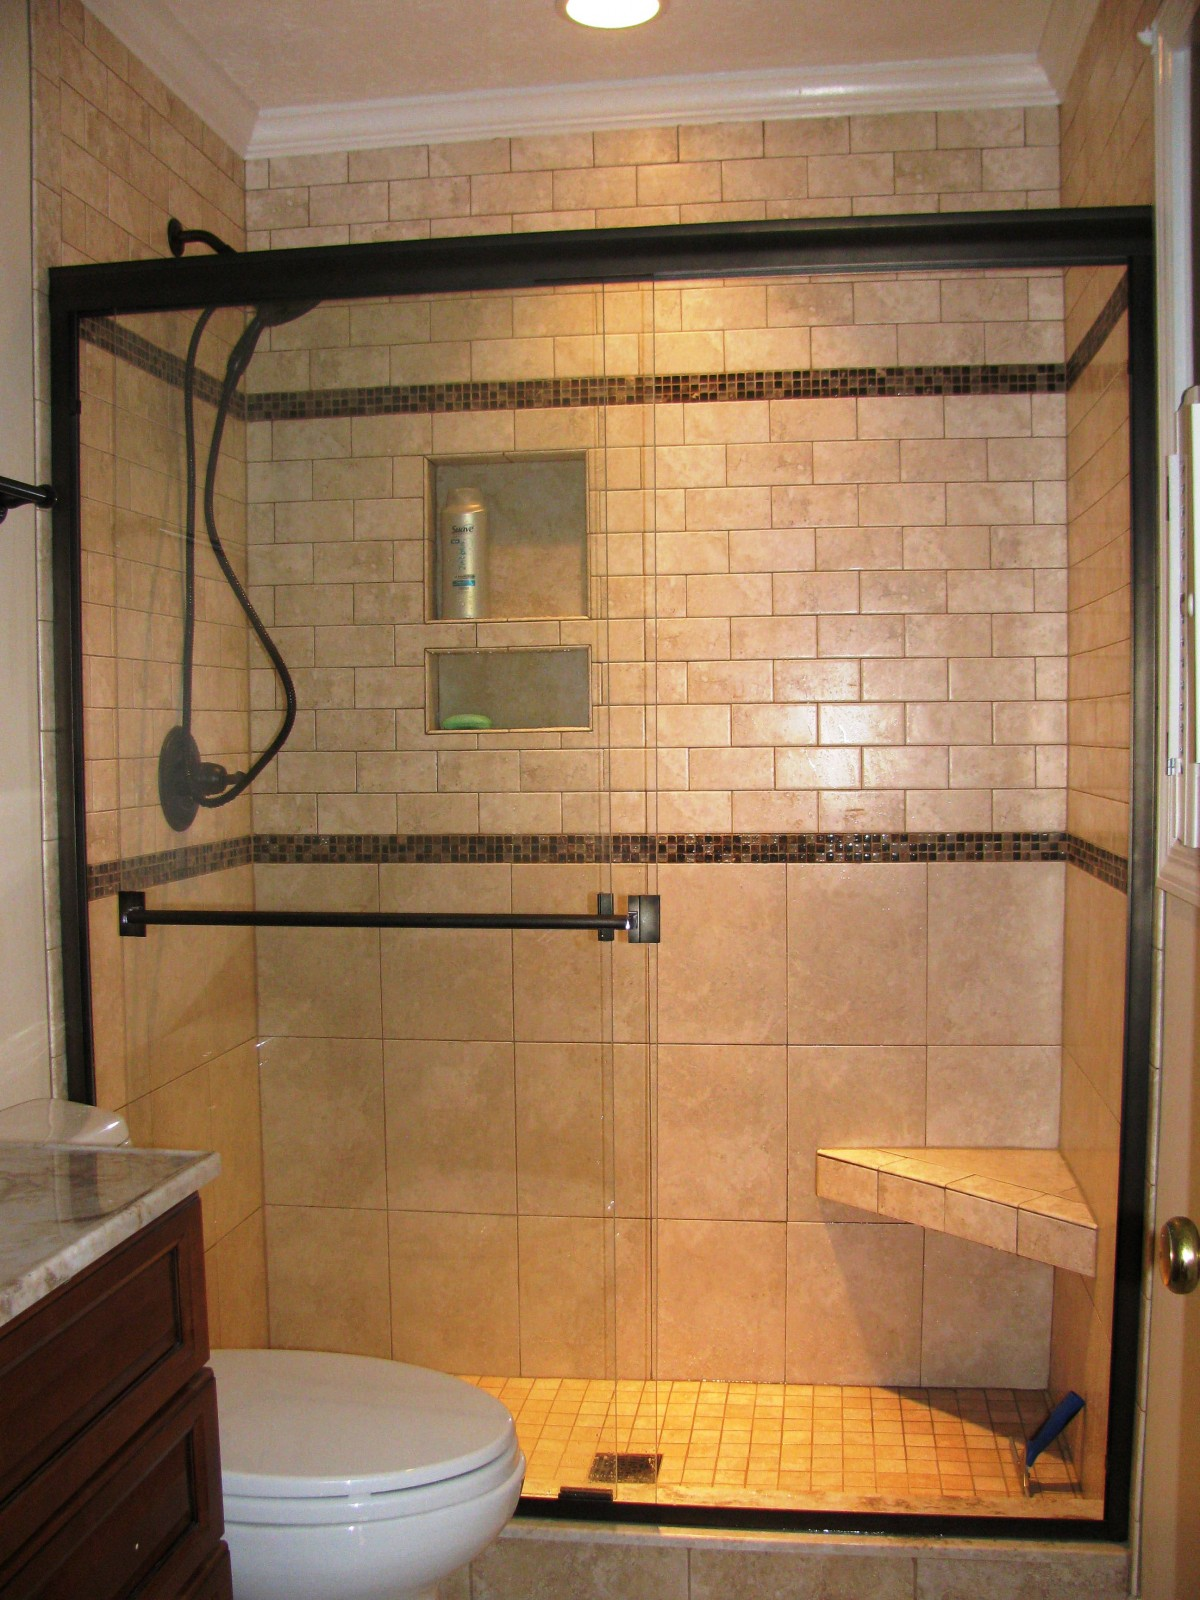 ceramic-subway-bathroom-wall-tile-shower-head-glass-cabin-partition-walls-with-black-frame-corner-bath-seat-brown-small-vanity-the-latest-styles-and-designs-of-bathroom-showrooms-1200x1600